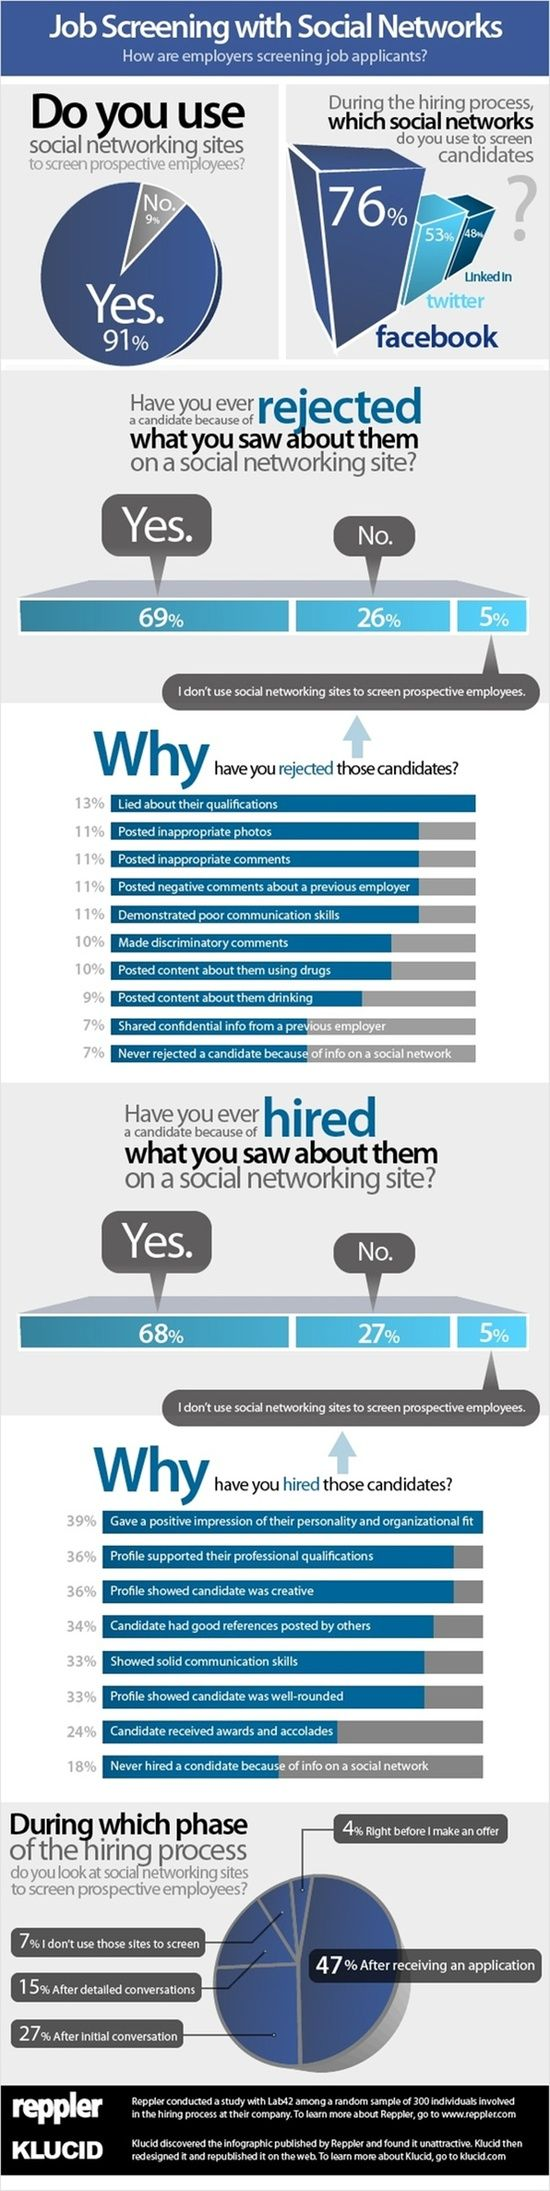 Checking You Out: How DO Recruiters Use Social Media?